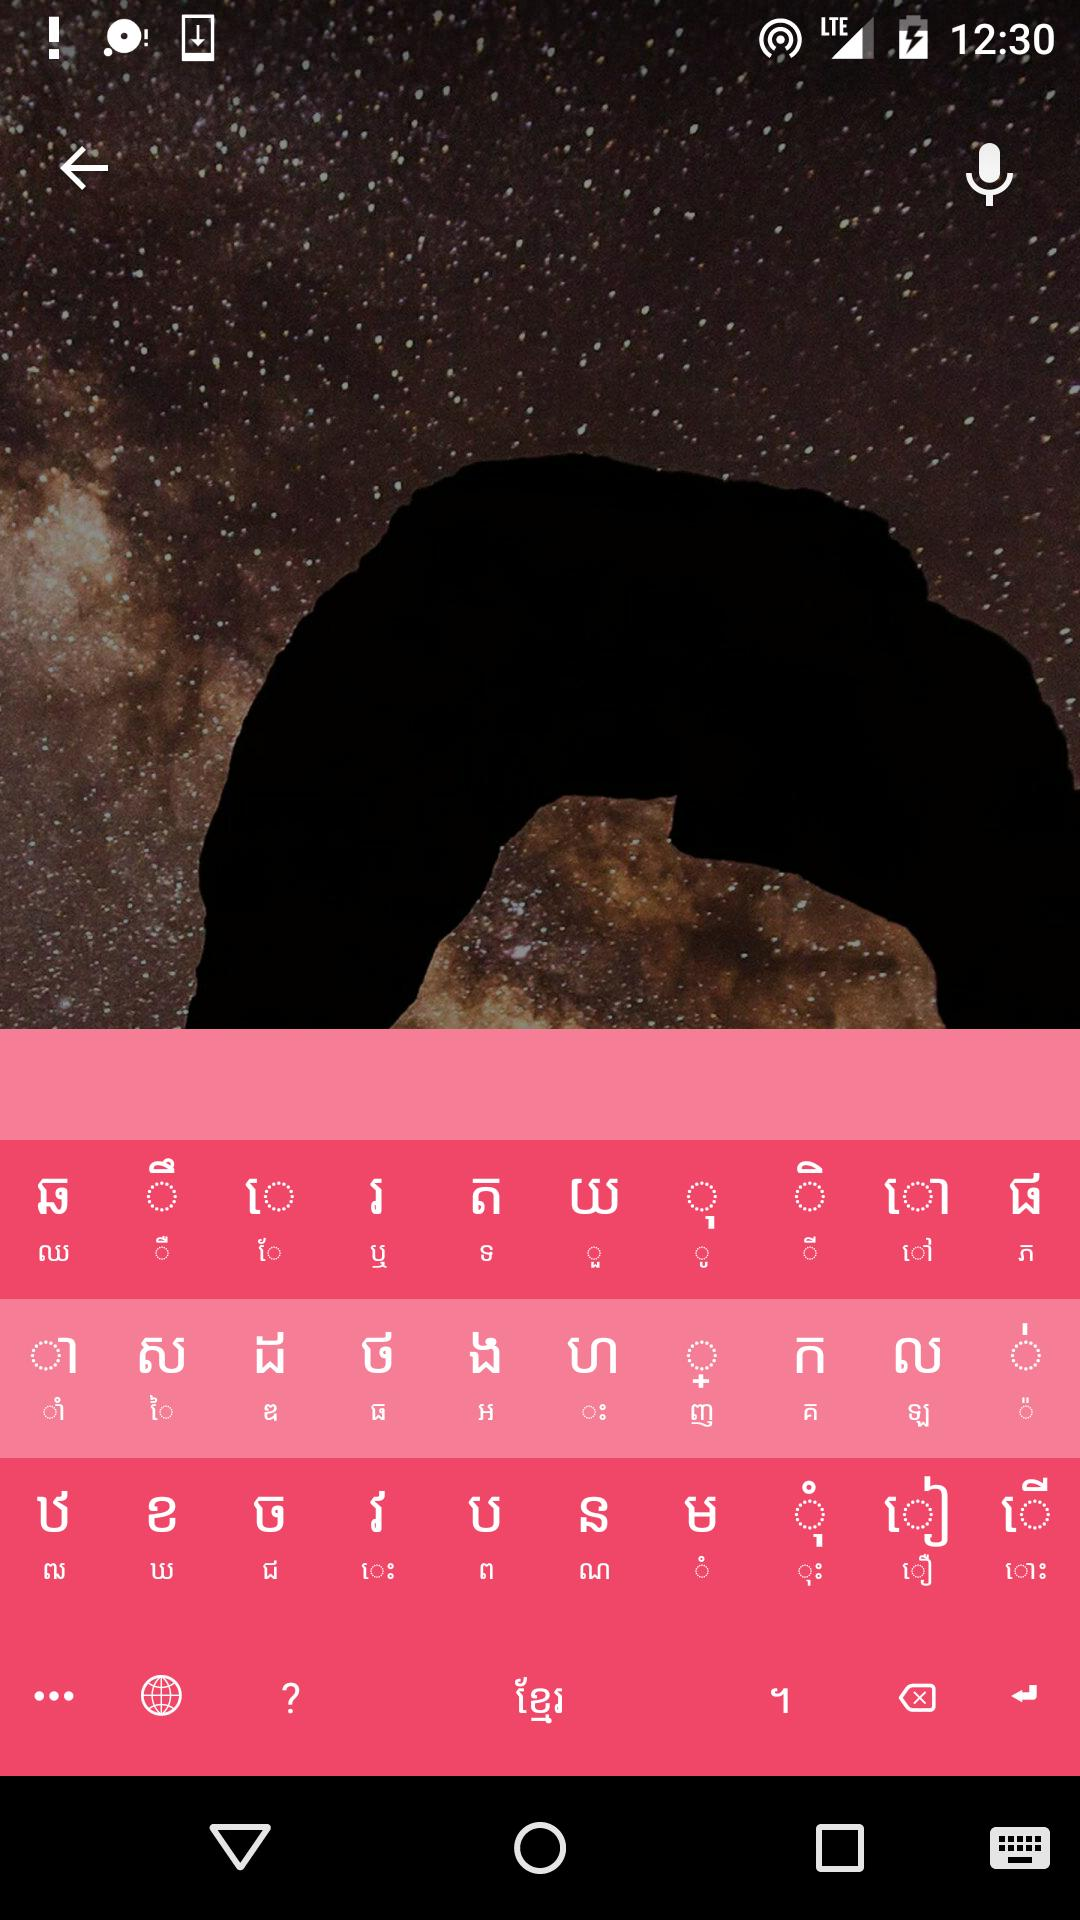 Khmer Smart Keyboard for Android - APK Download